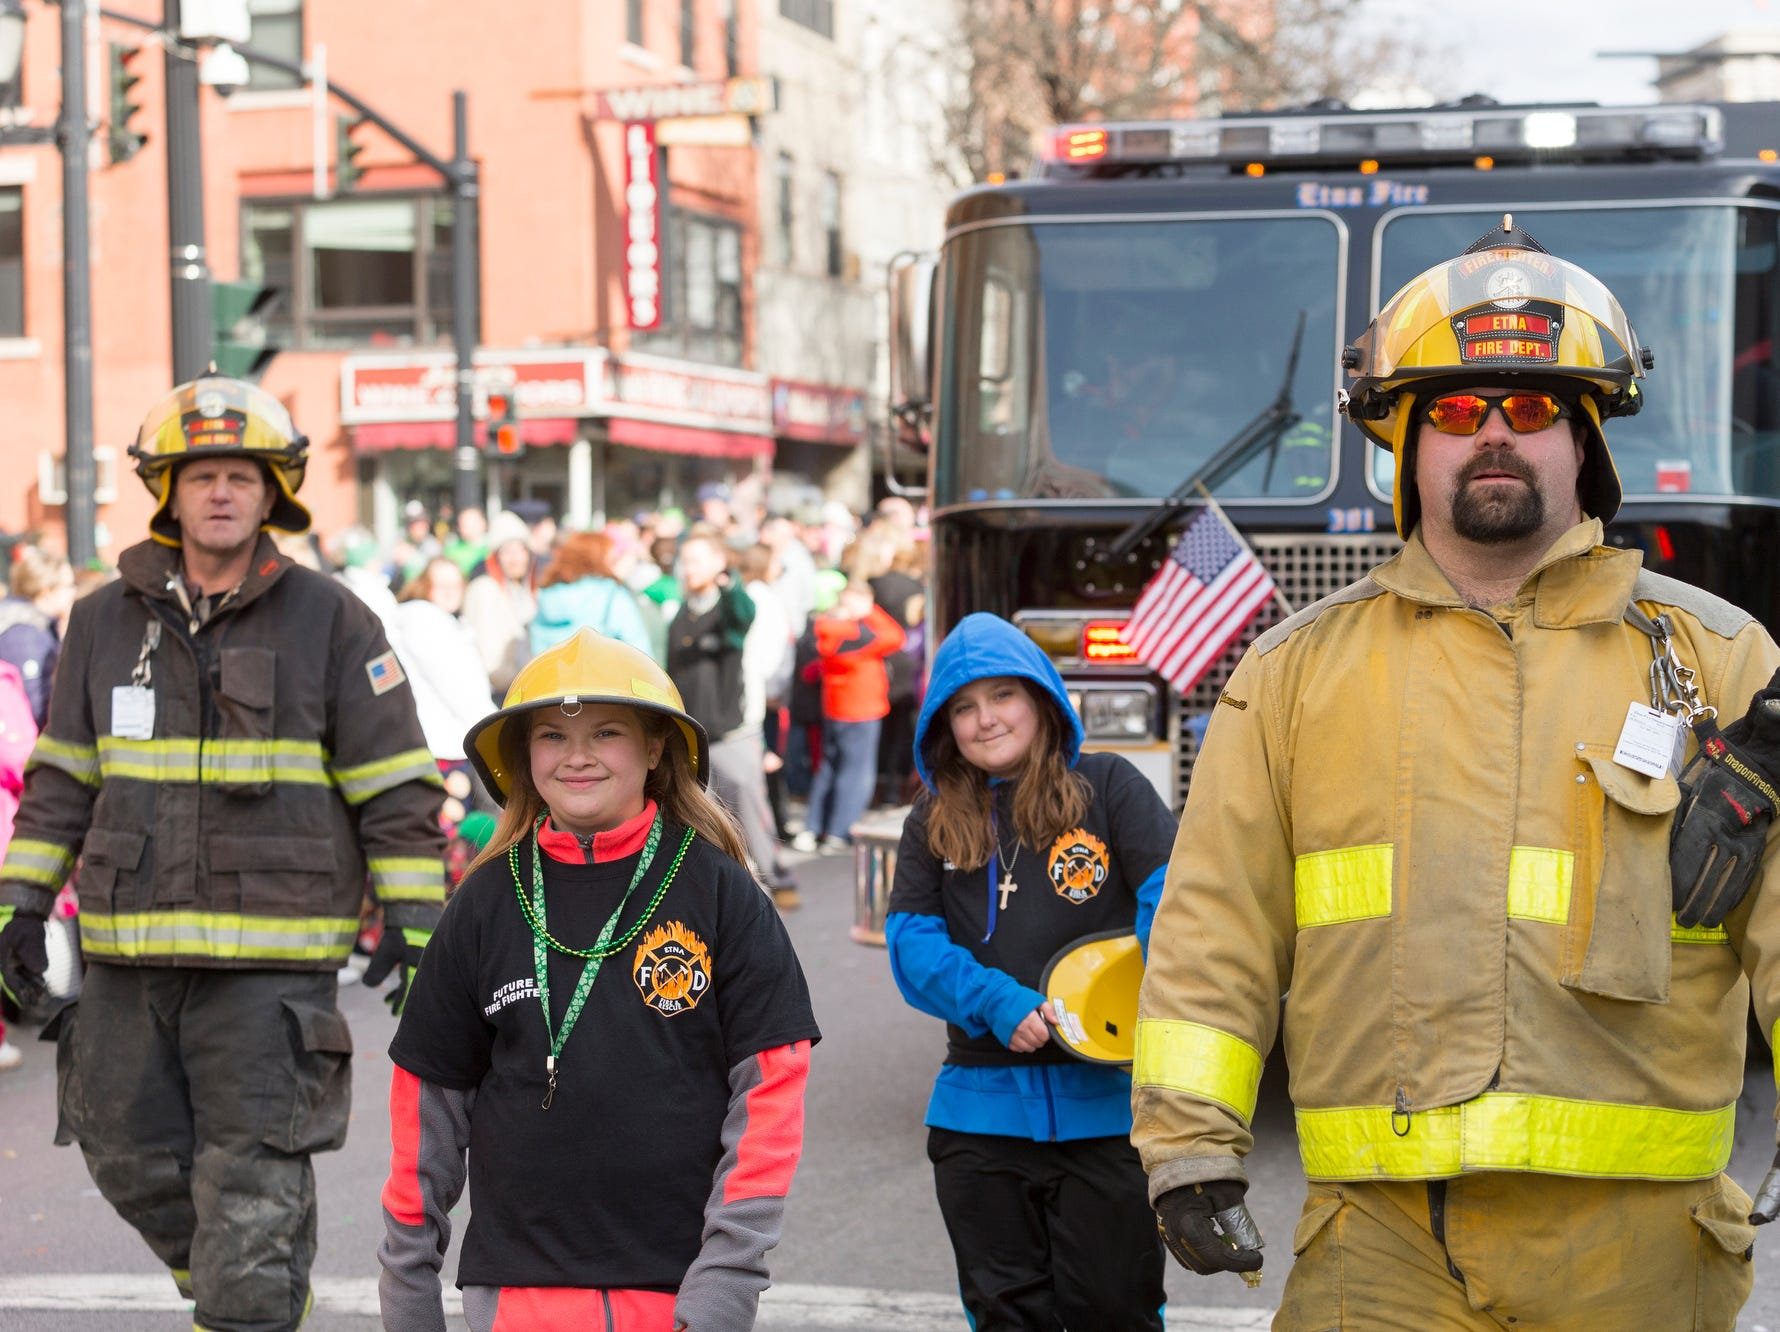 2016: Members of the Etna Volunteer Fire Department march in the 49th annual St. Patrick's Day Parade, Saturday in Binghamton. From left, Firefighter Dave Fuller, future firefighters Addison Lawrence, and Fuller's daughter Nikki, and Firefighter Mike Ayers.